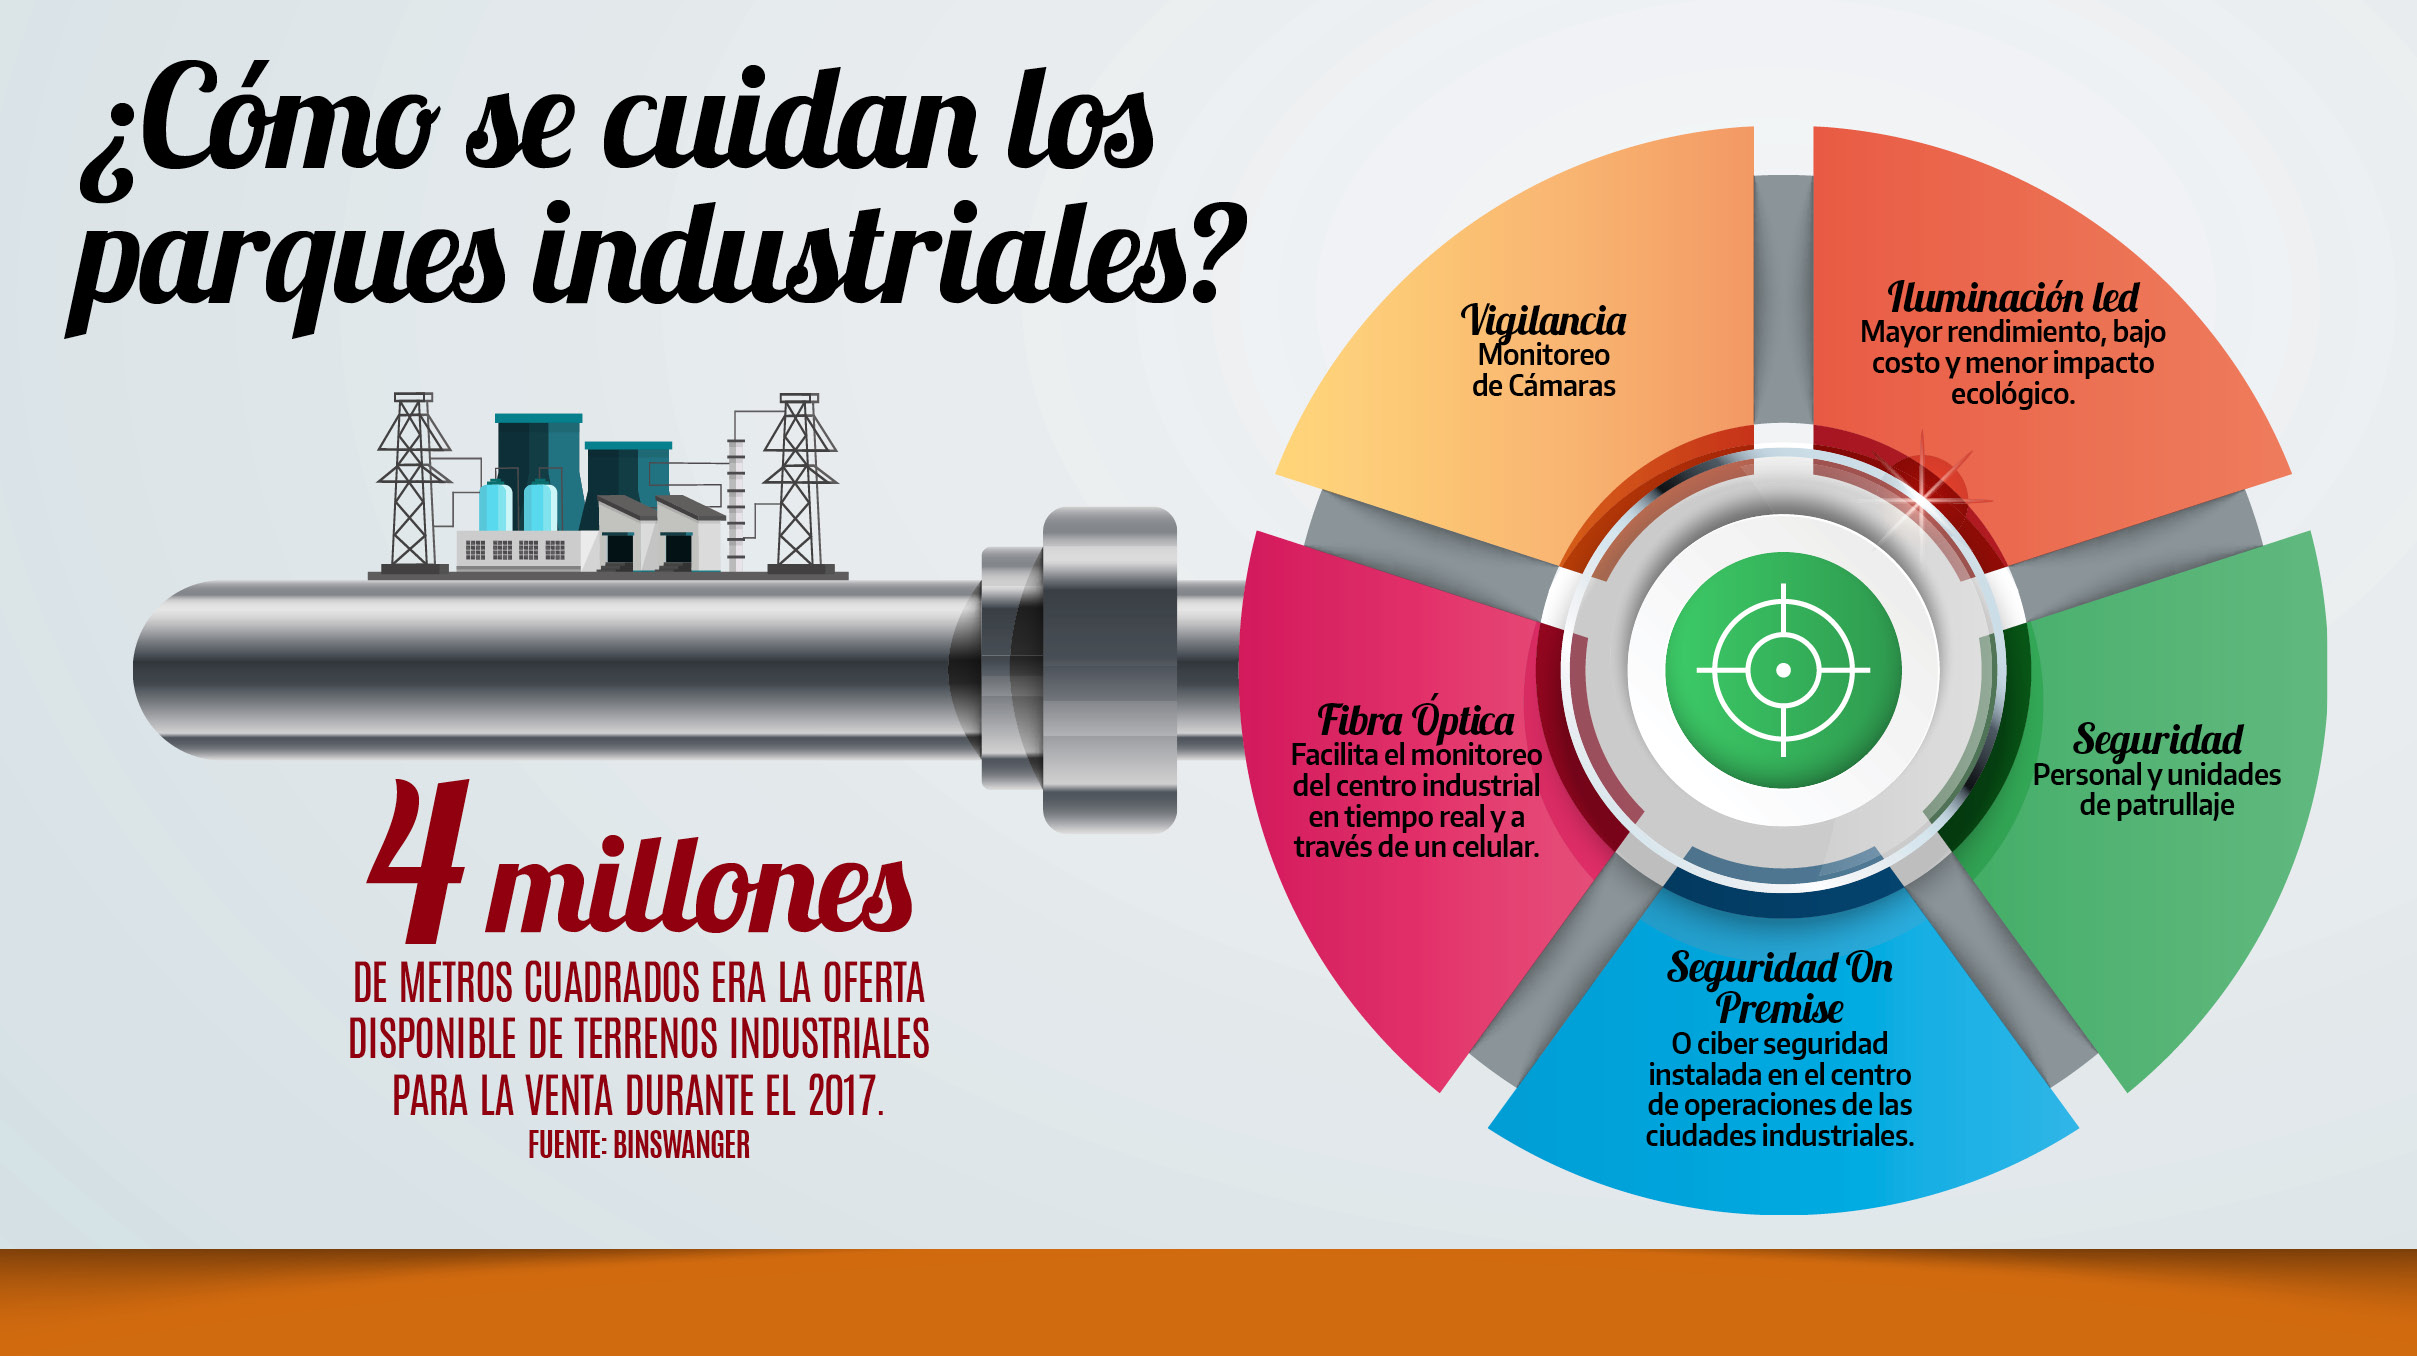 ¿Qué tan seguros son los parques industriales?